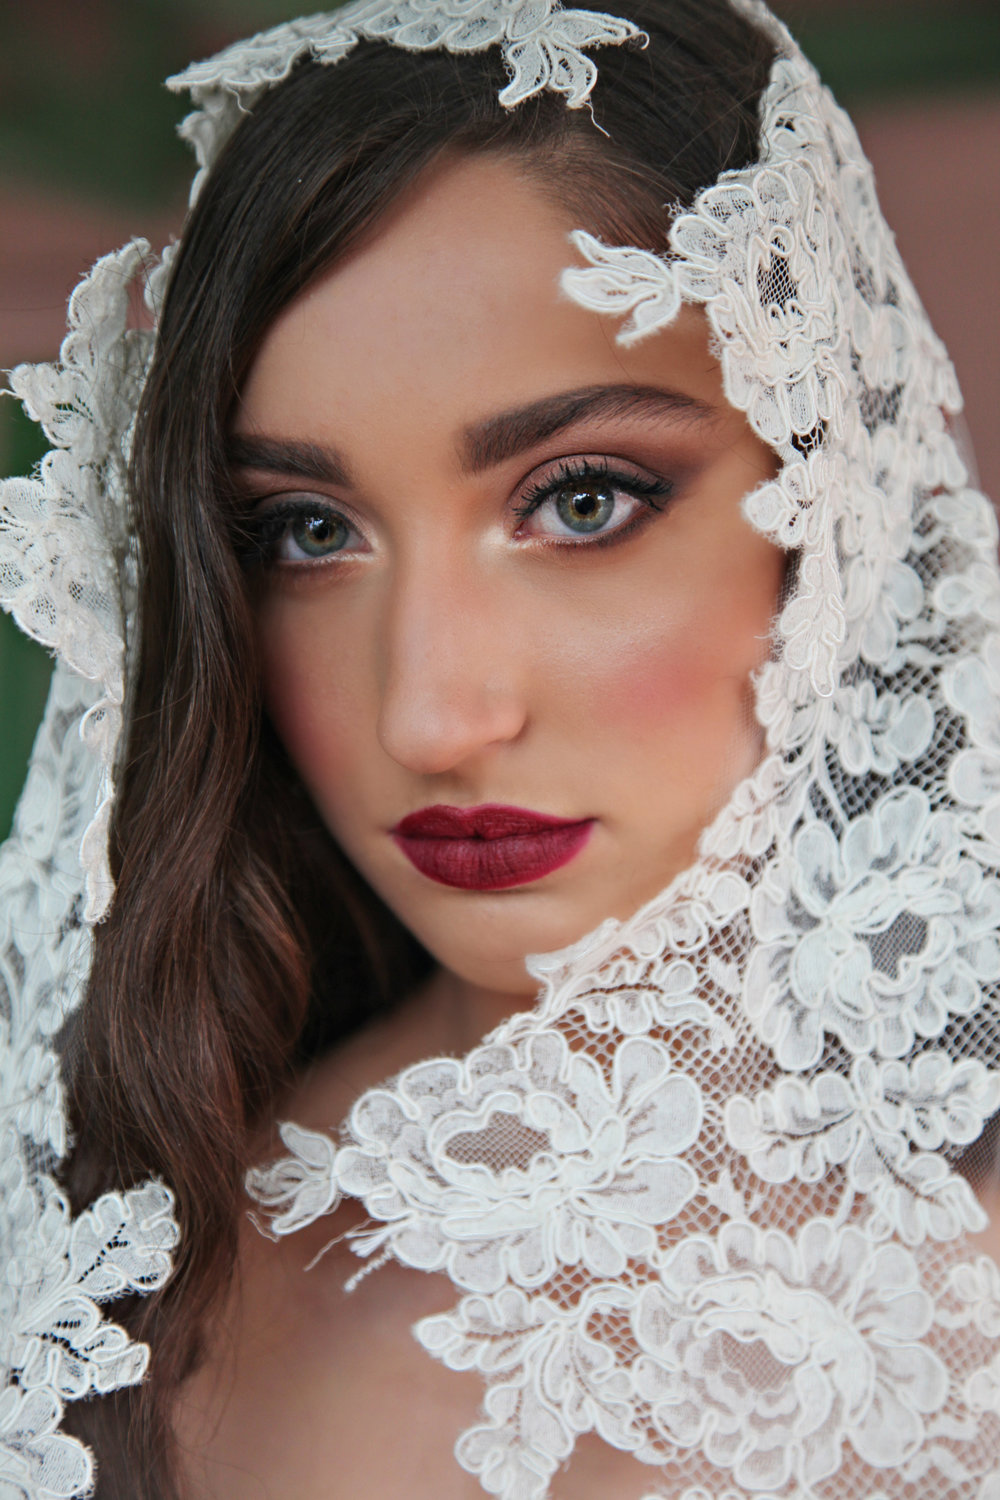 Lace Wedding Veil.jpg